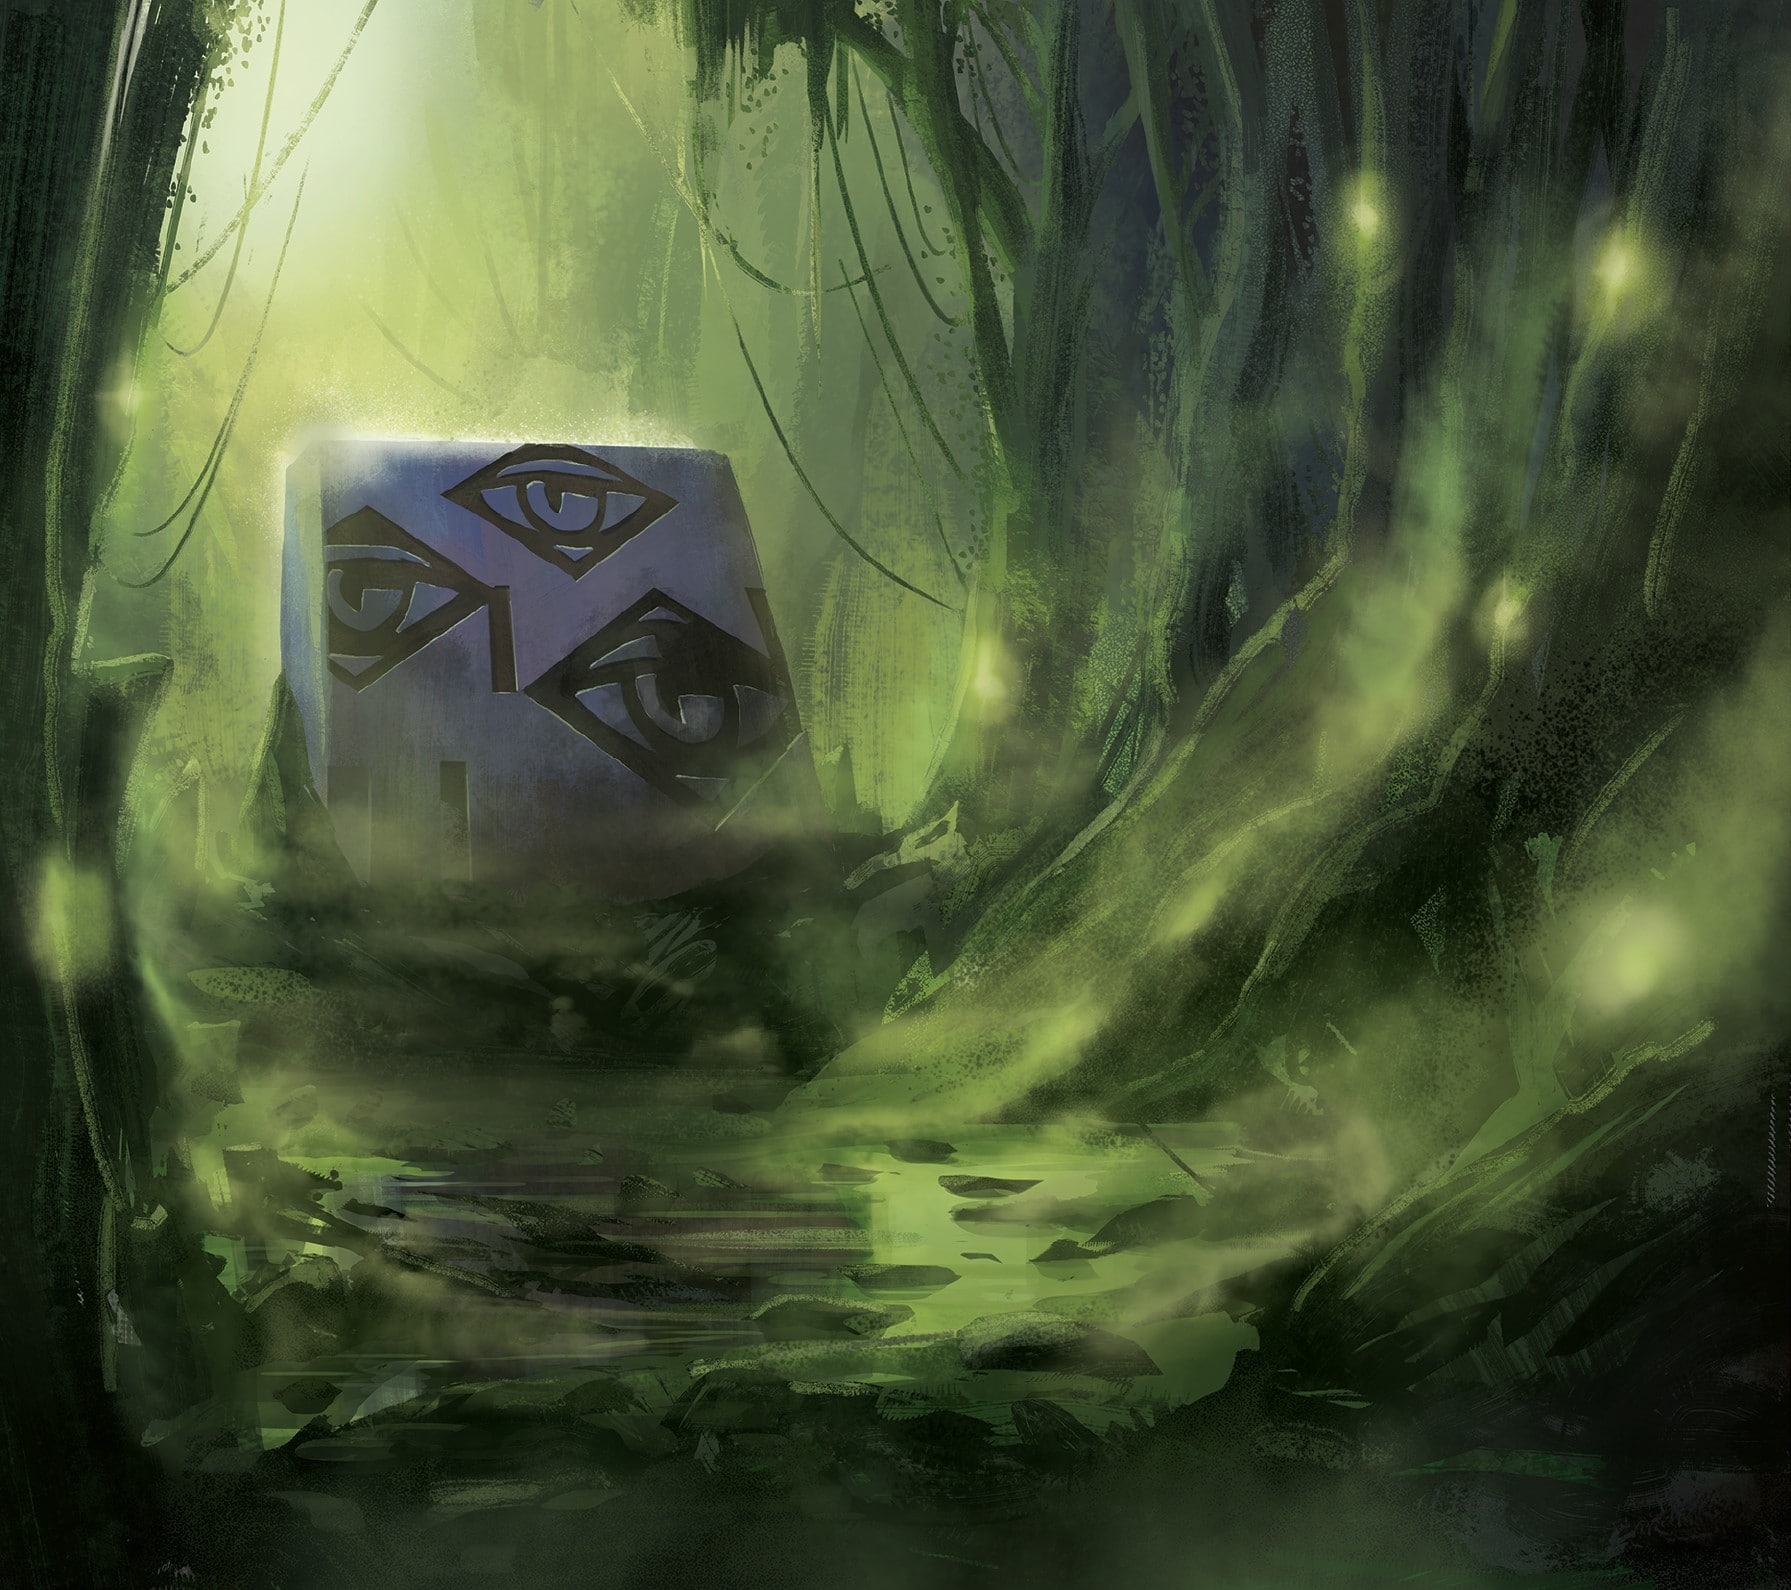 """""""Substantially complete"""" - illustration with emerging Monolith in green toxic environment by Jakub Cichecki"""